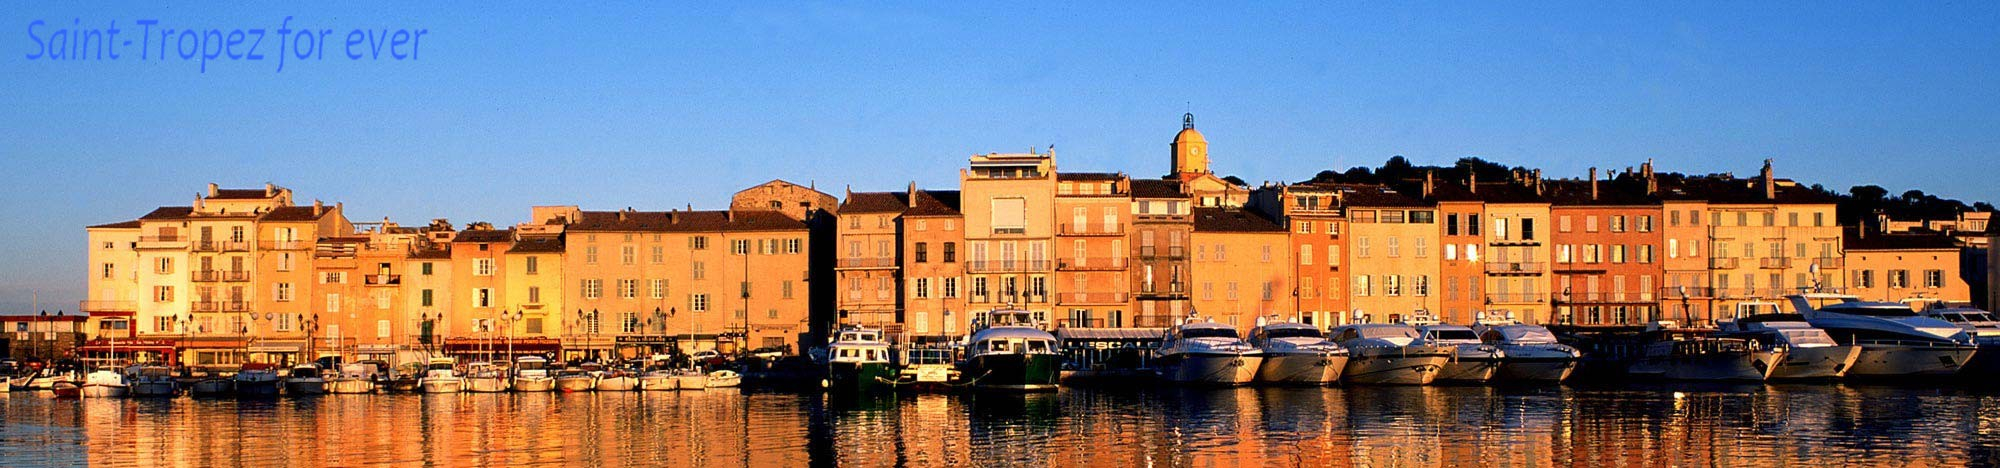 Saint-Tropez ... For Ever